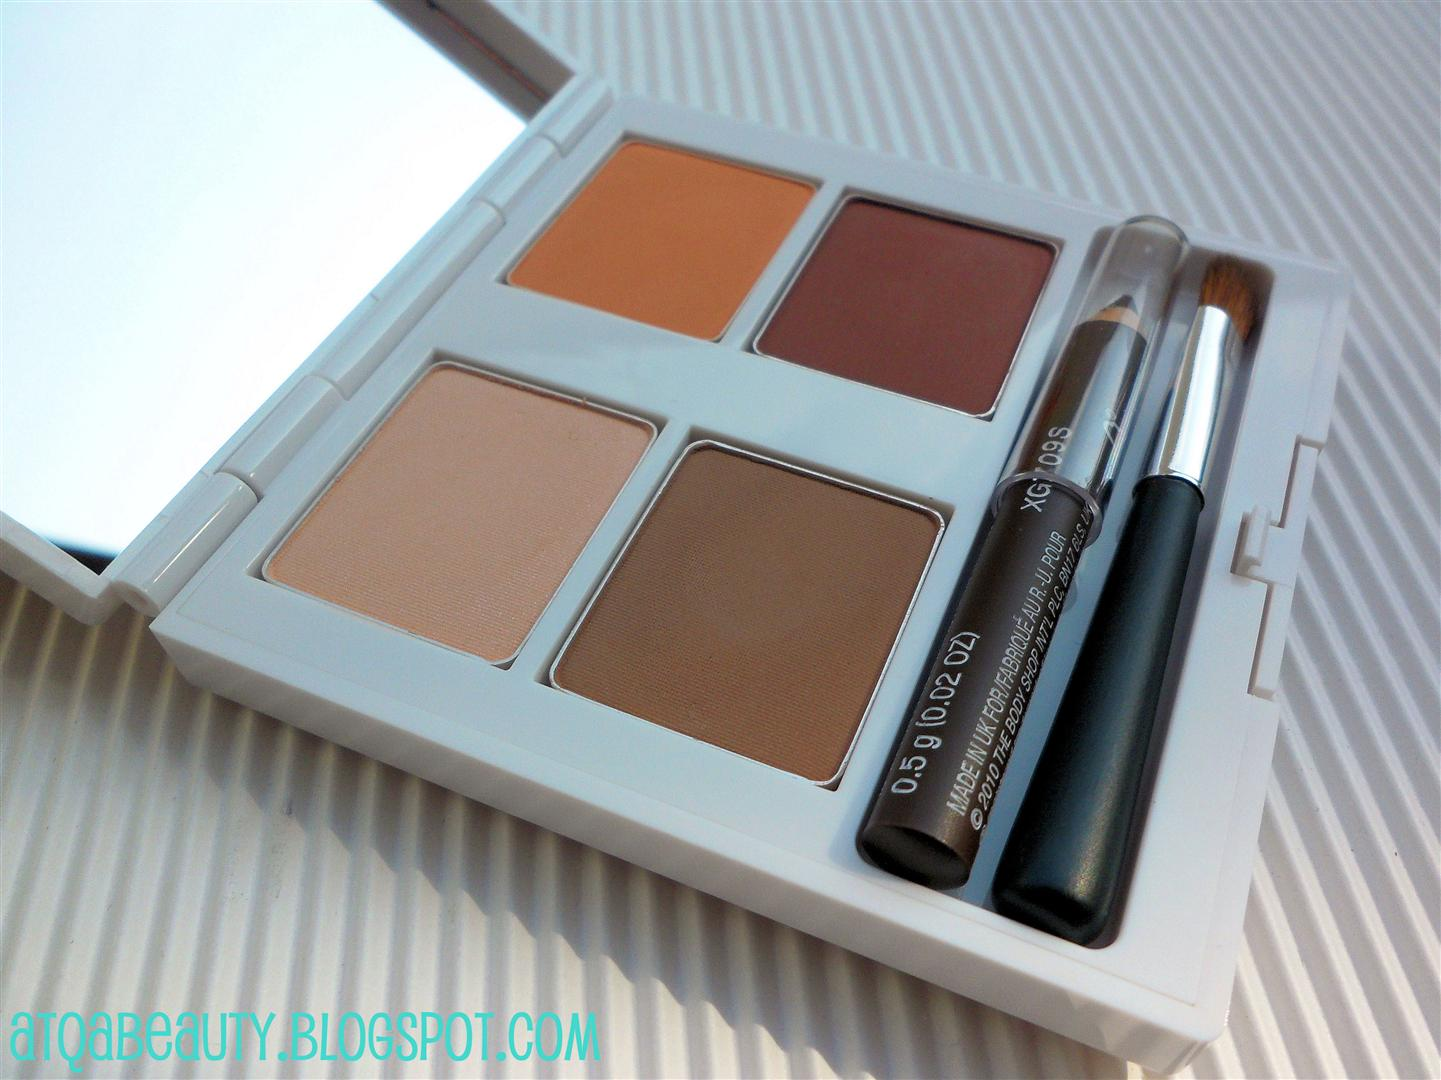 Makijaż :: The Body Shop Boho Beauty Eyeshadow Palette